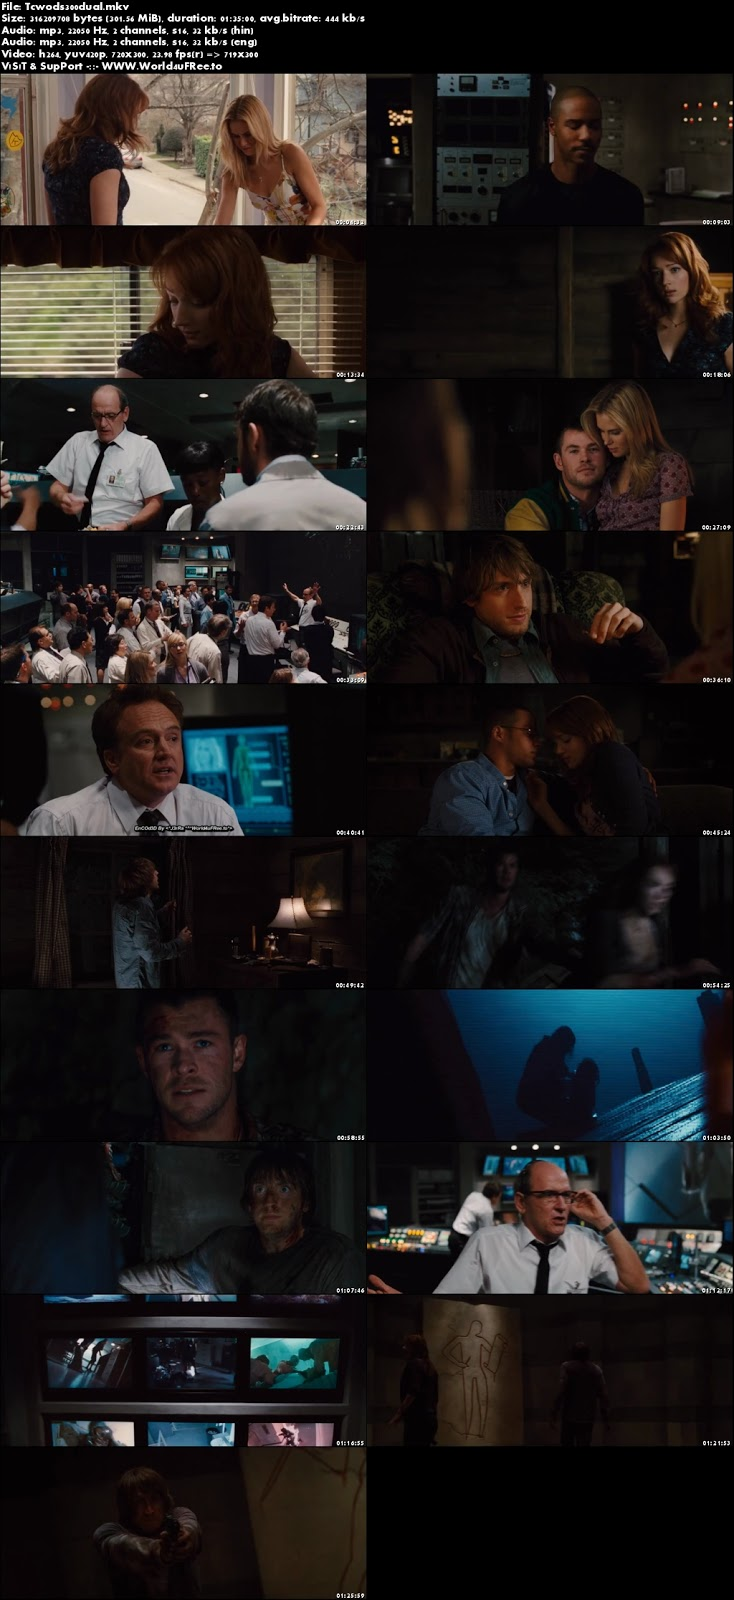 The Cabin In The Woods 2012 Dual Audio BRRip 480p 300Mb x264 world4ufree.to hollywood movie The Cabin In The Woods 2012 hindi dubbed dual audio 480p brrip bluray compressed small size 300mb free download or watch online at world4ufree.to